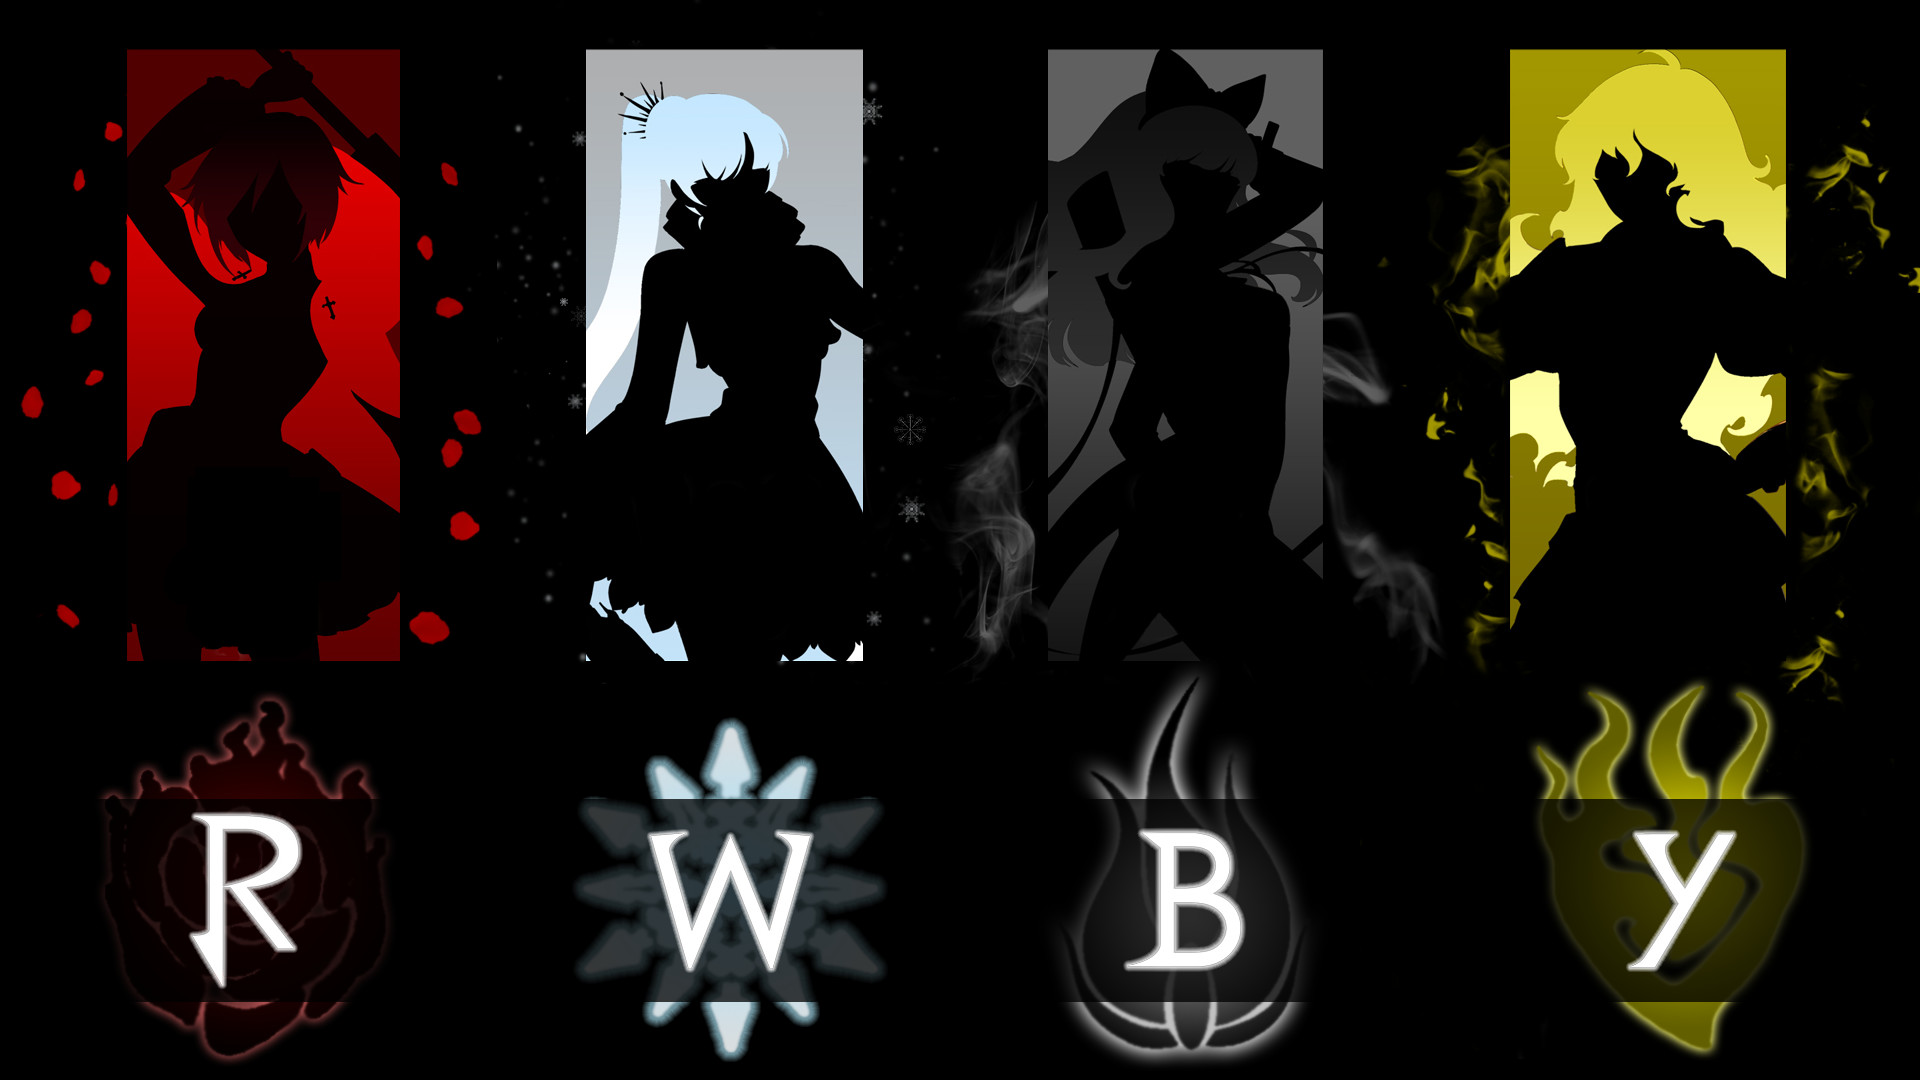 1920x1080 Image - Rwby wallpaper by moonscarf7-d6jheeq.png | RWBY Wiki | FANDOM  powered by Wikia